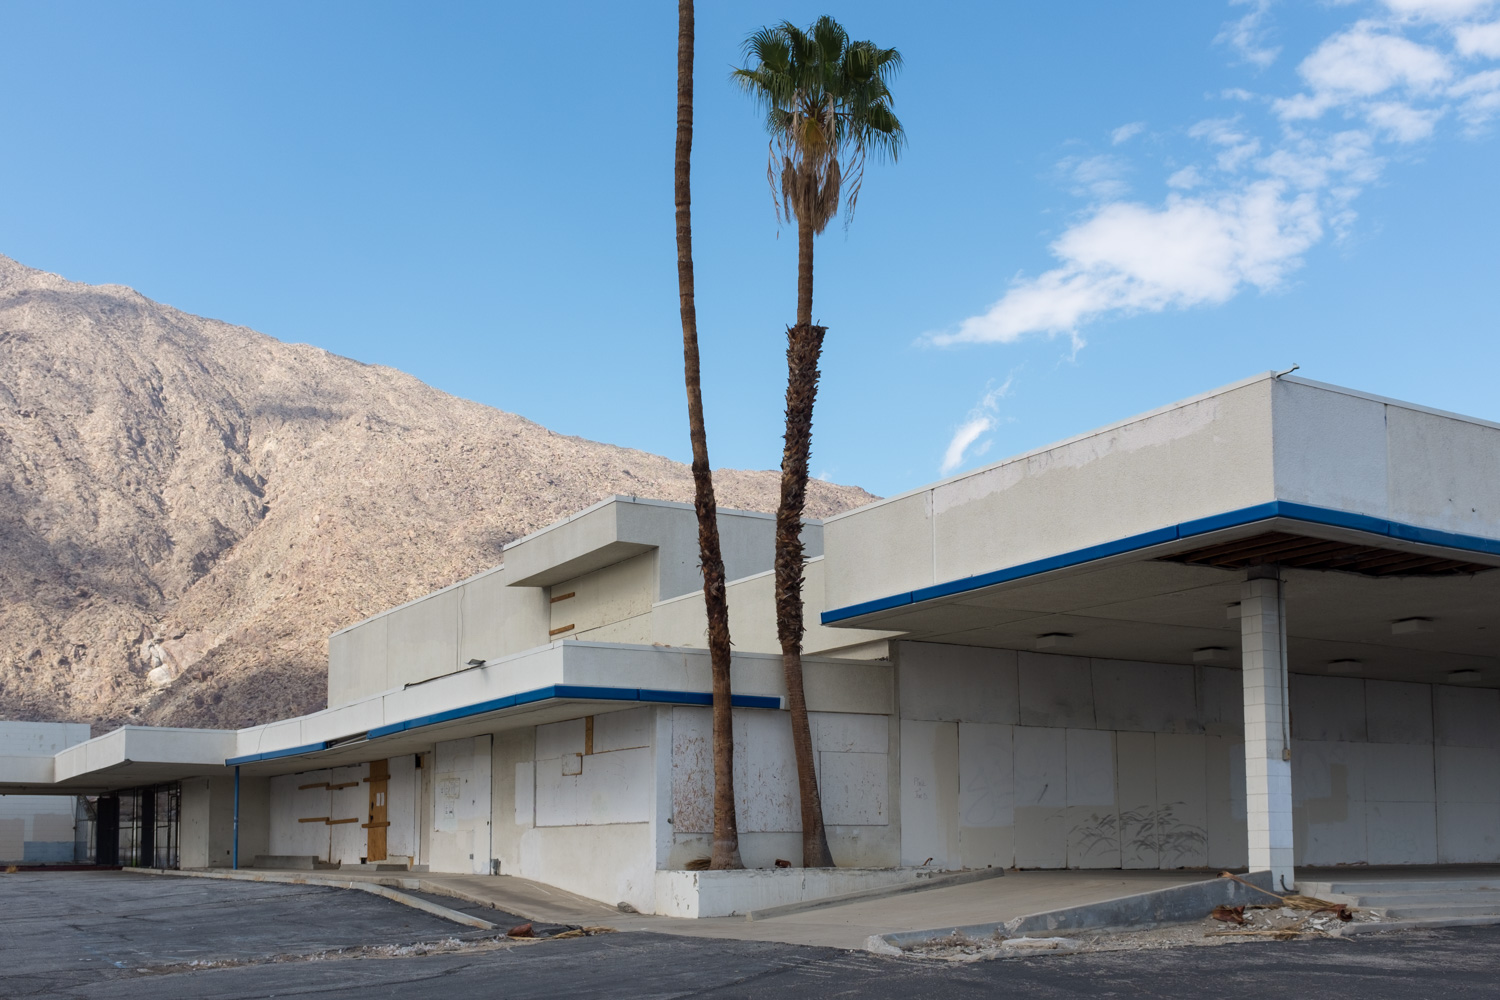 Former Chevrolet Dealer, Palm Springs.